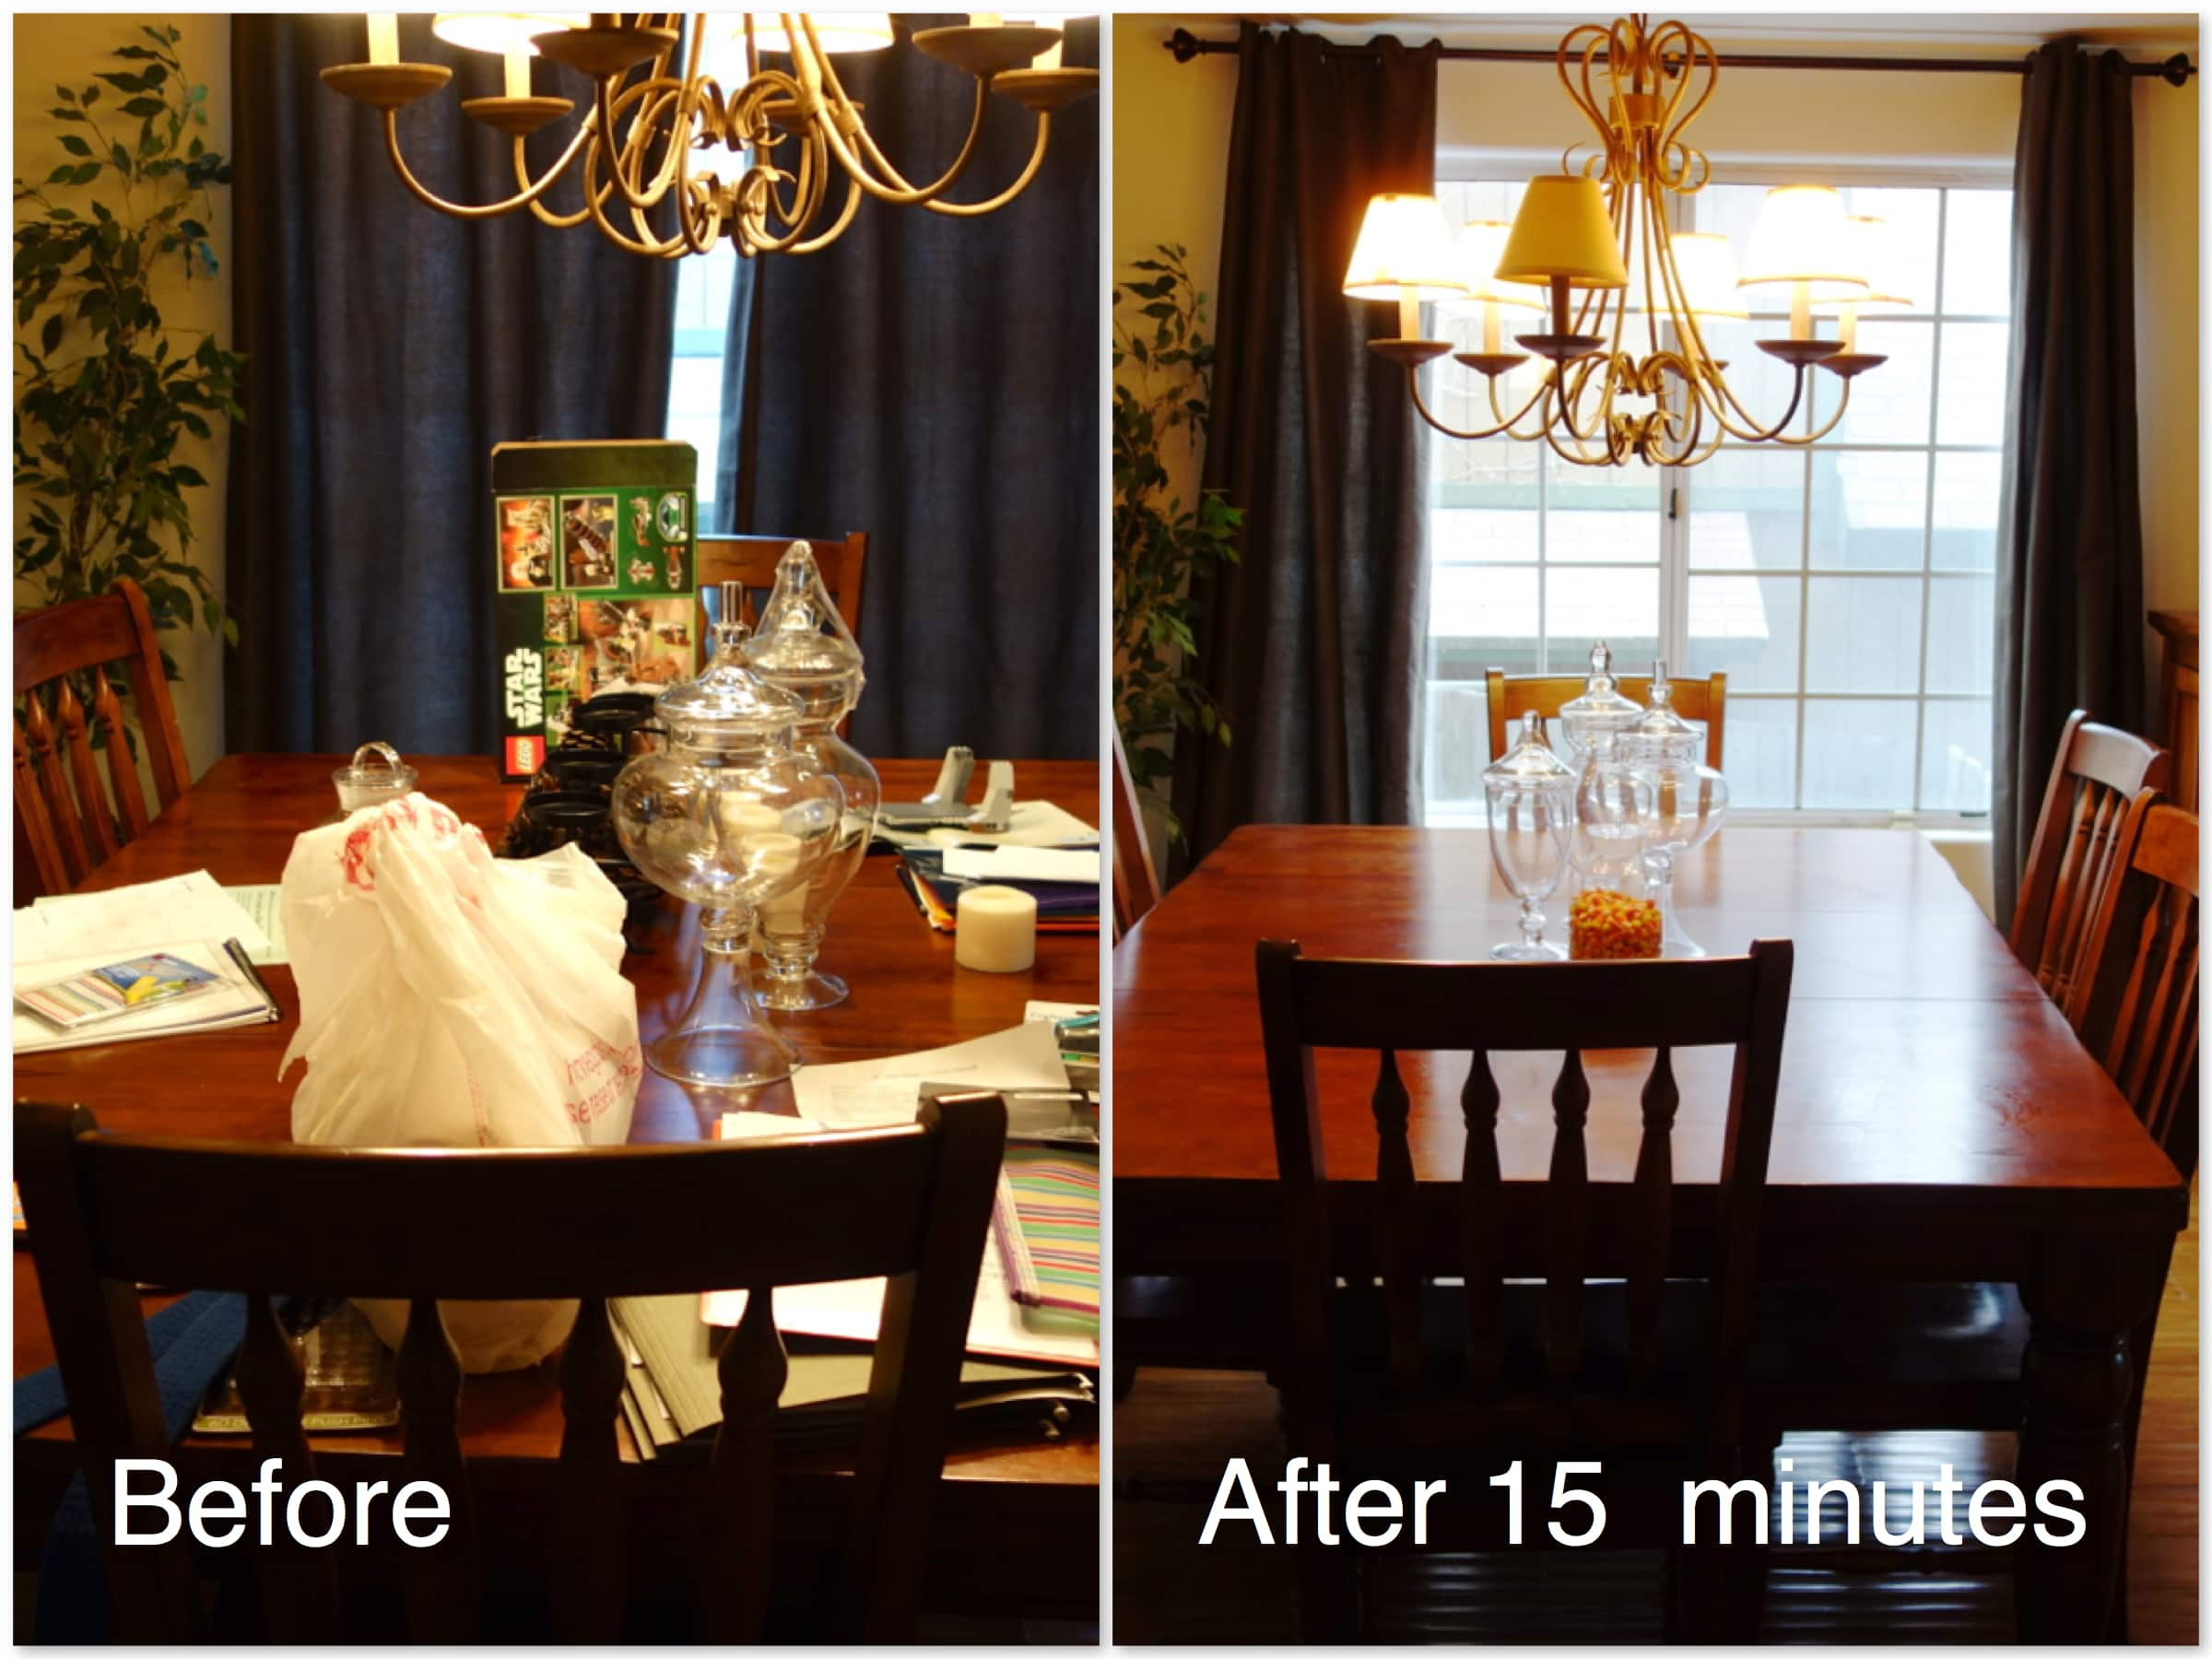 Before and After Photos Messy Dining Room Table